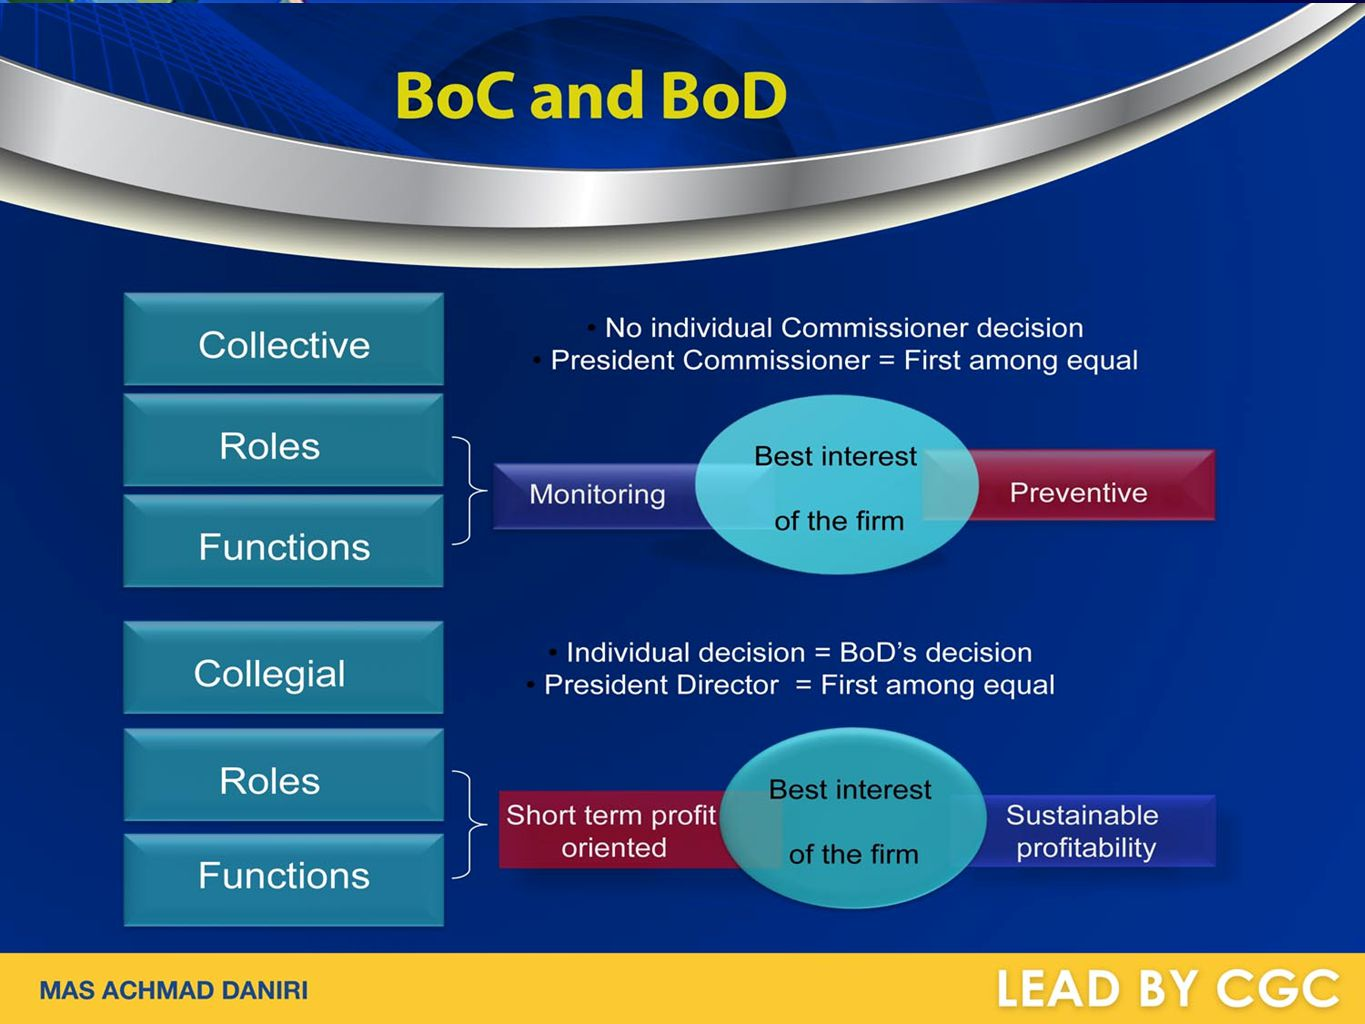 BoC and BoD